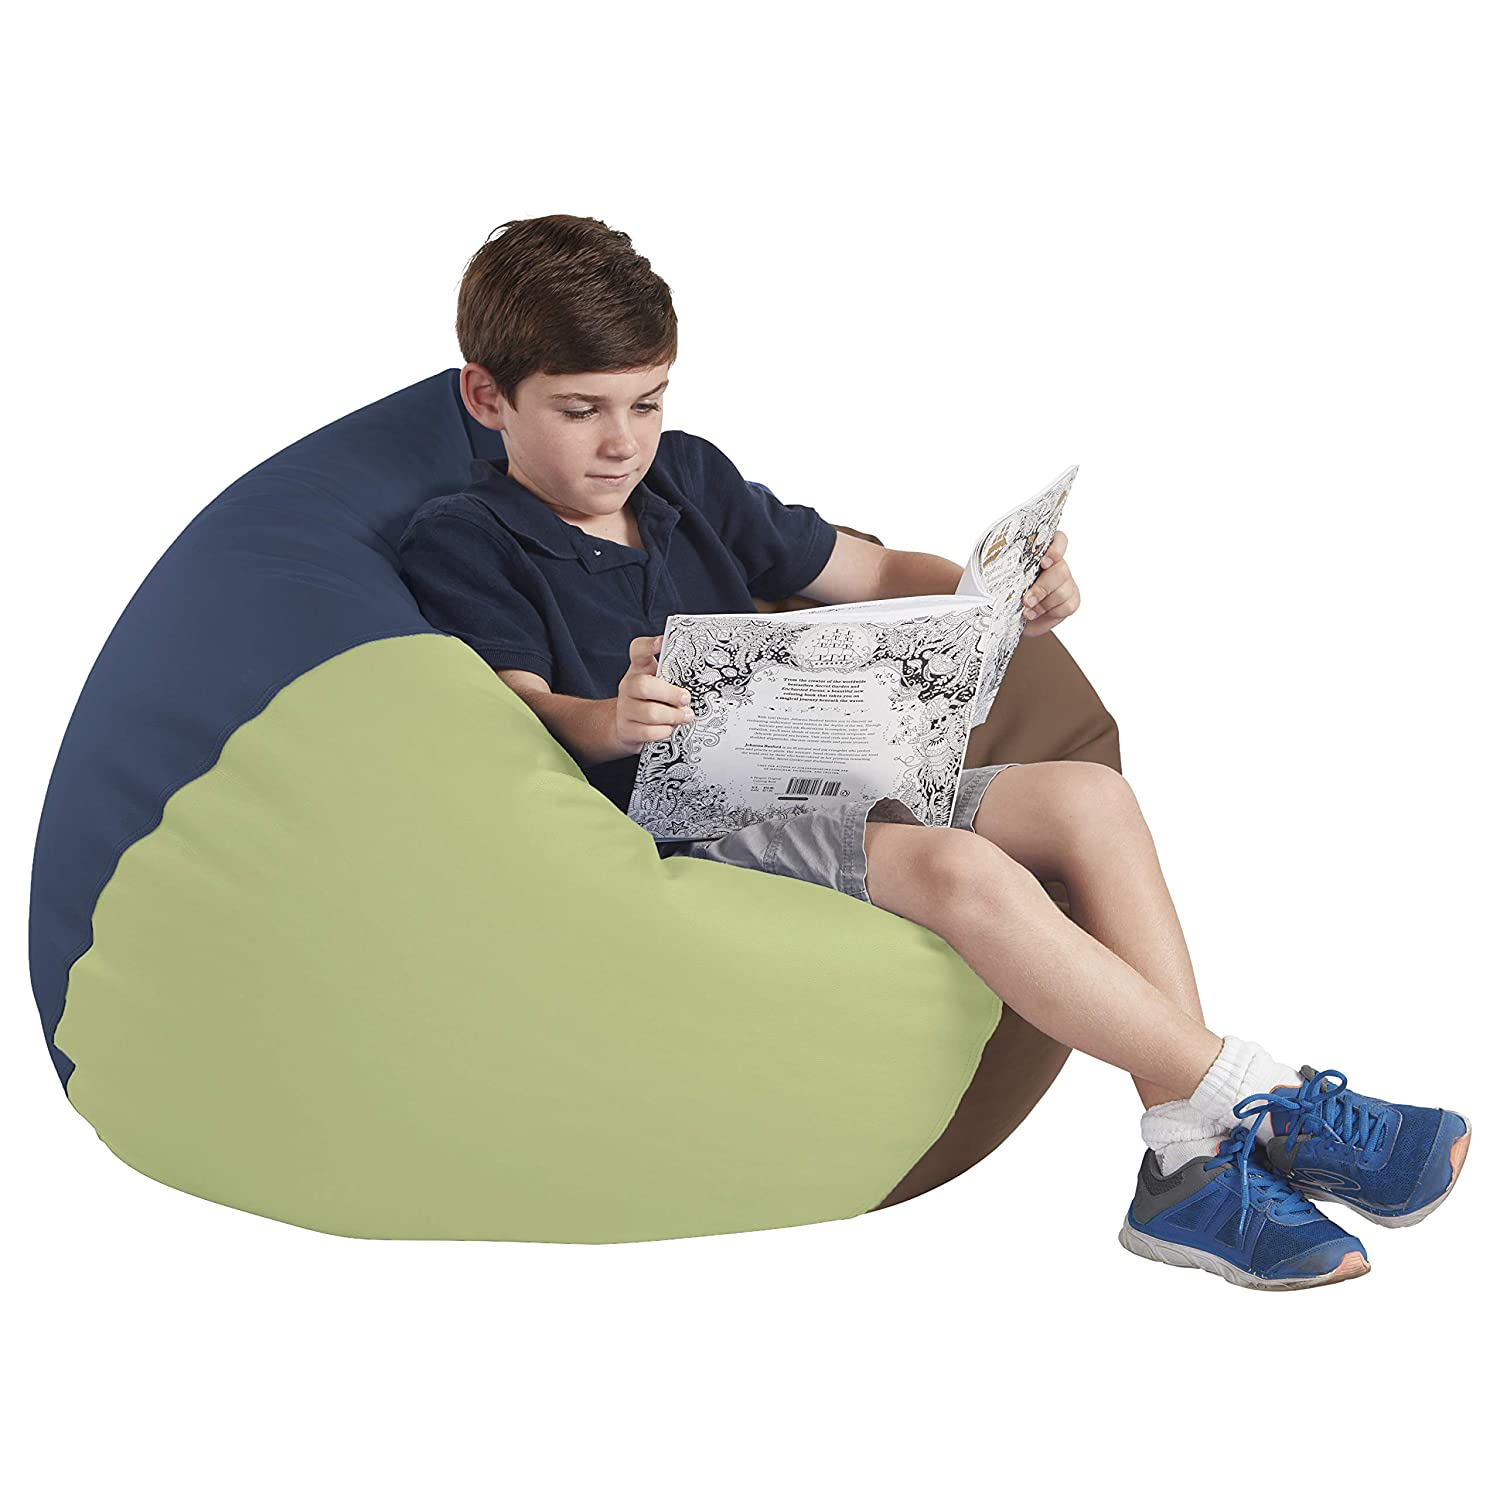 "FDP SoftScape Classic 35"" Junior Bean Bag Chair, Furniture for Kids, Perfect for Reading, Playing Video Games or Relaxing, Alternative Seating for Classrooms, Daycares, Libraries or Home - Earthtone"